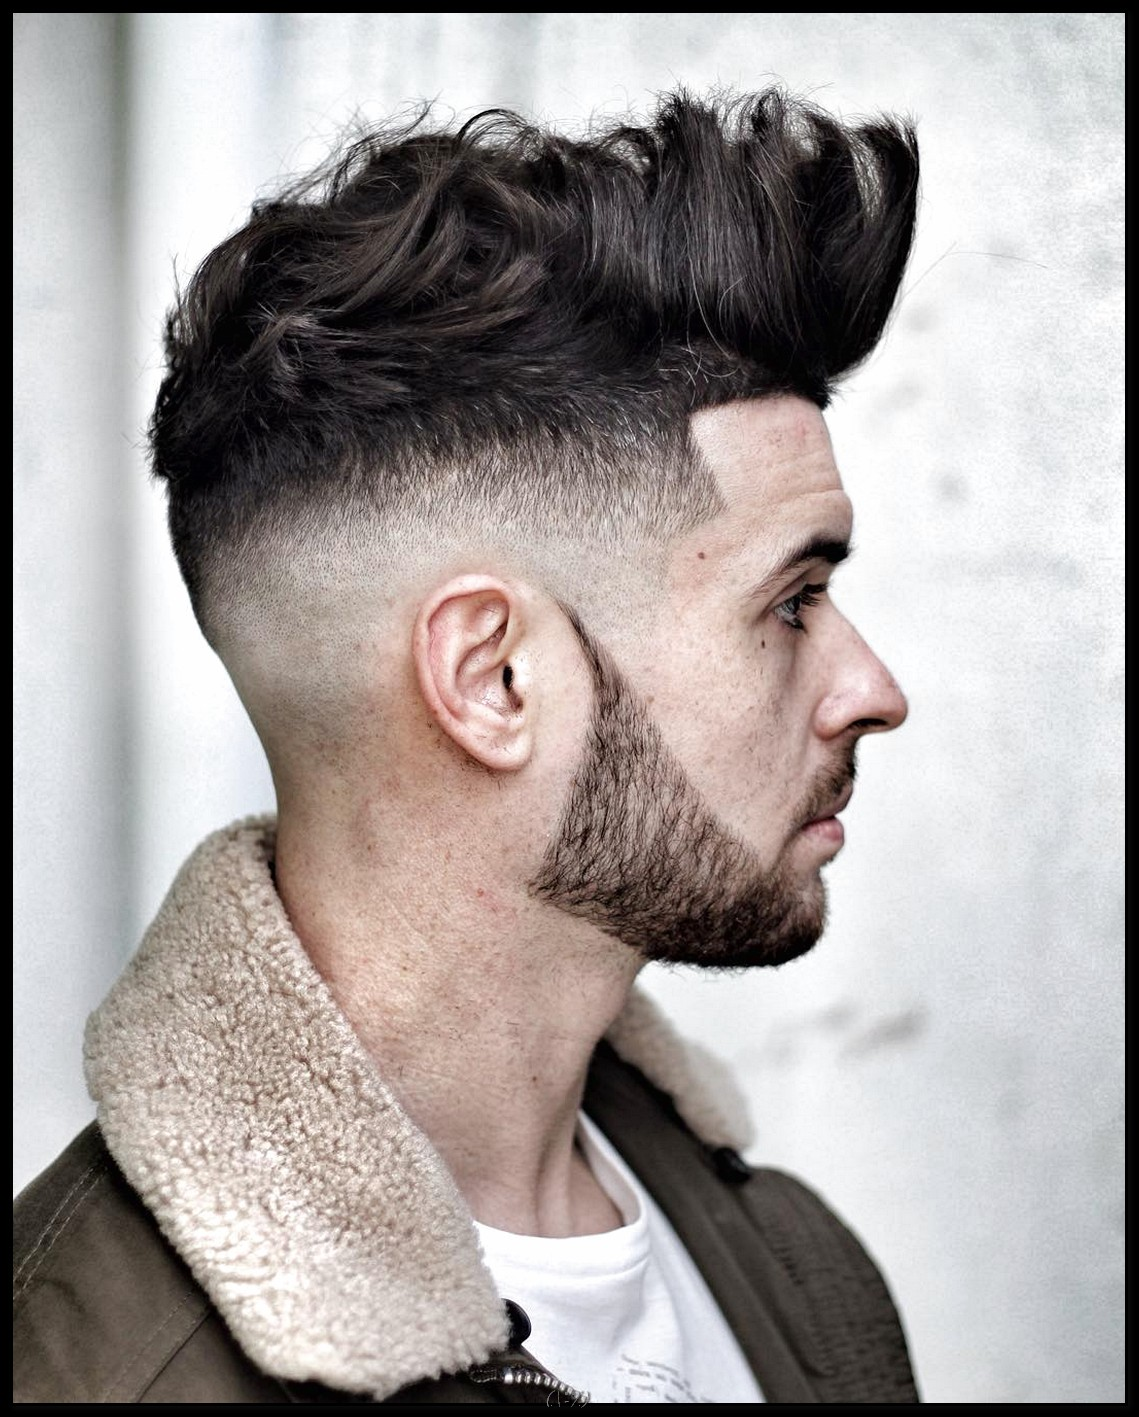 Toupee Hair | Hair Products for Quiff | Mens Quiff